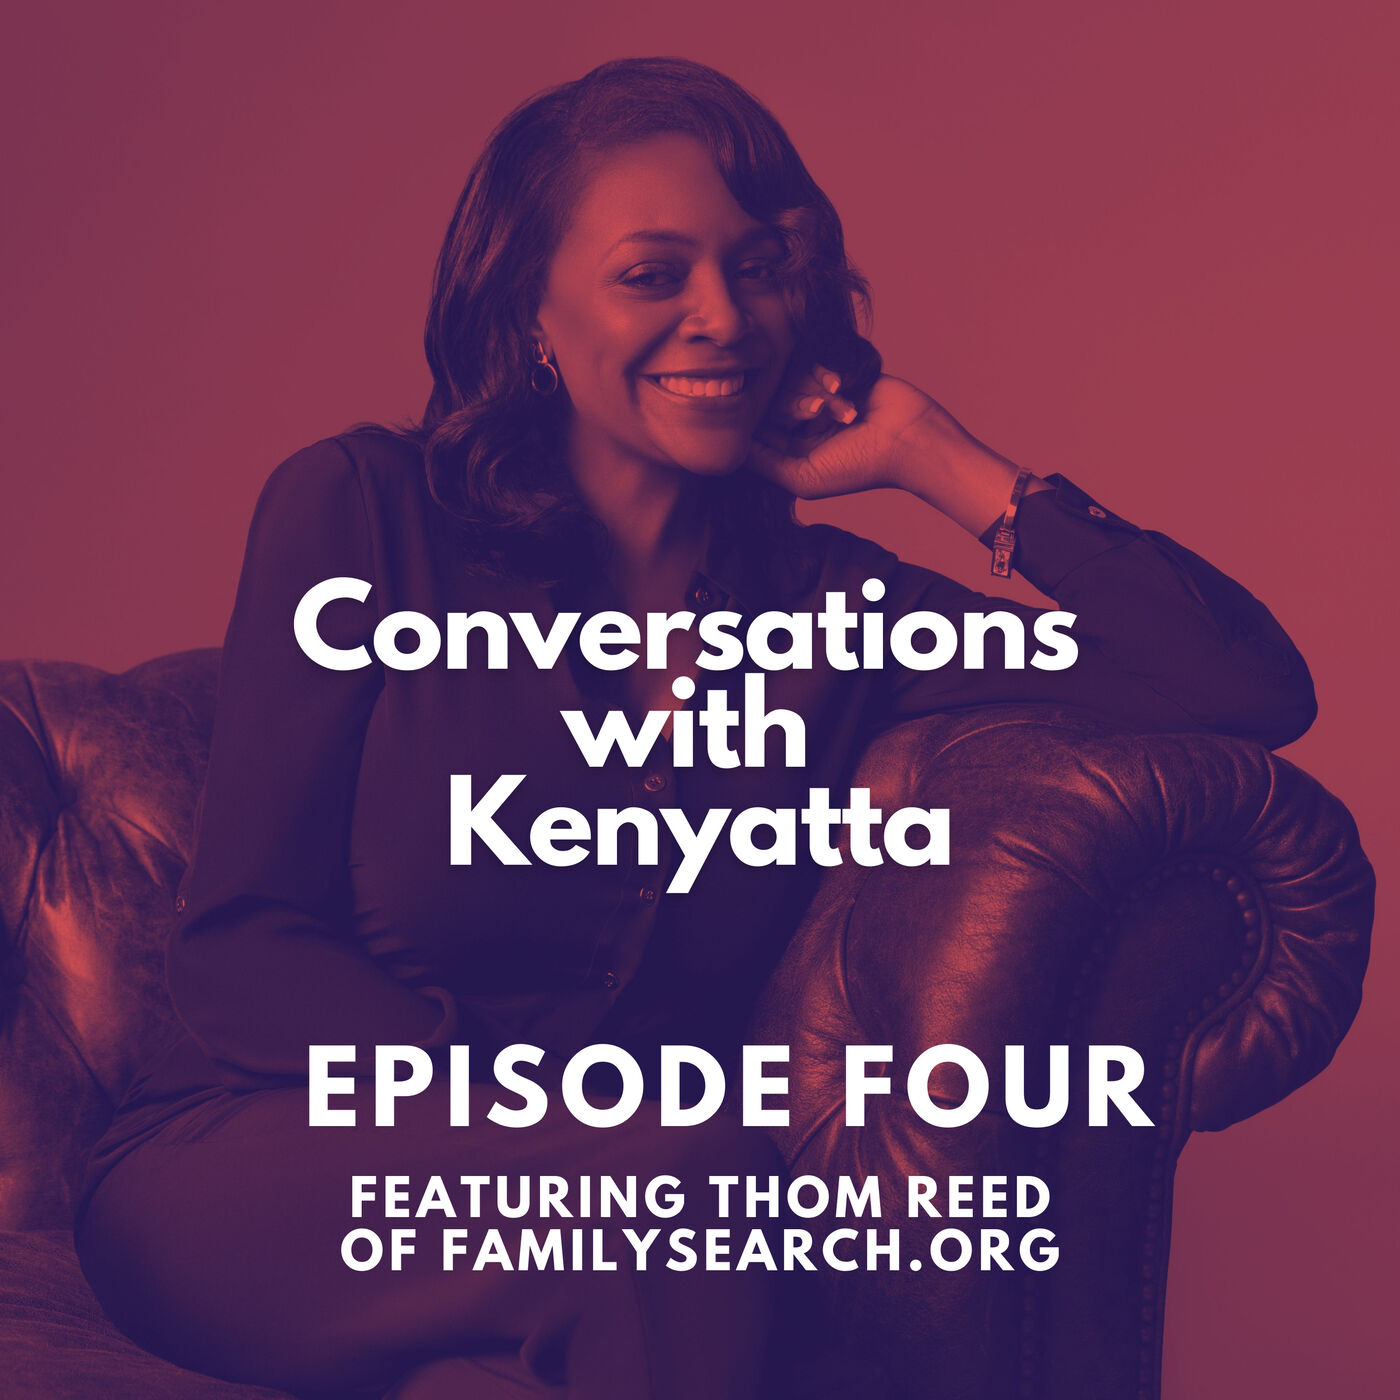 A Conversation with Thom Reed of FamilySearch.org